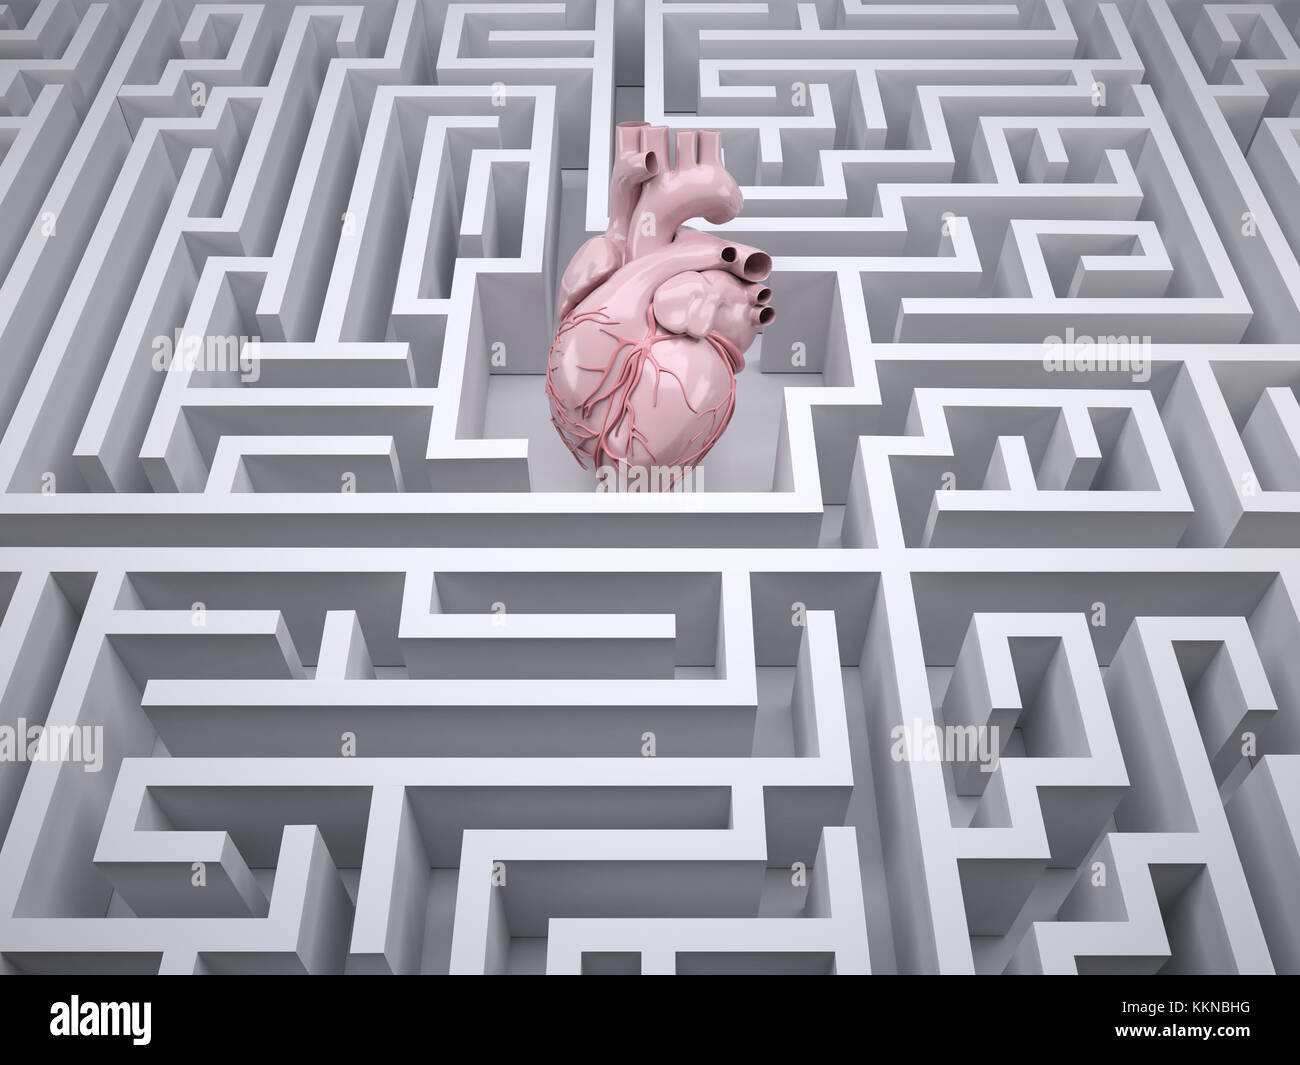 human heart organ in the labyrinth maze, 3d illustration - Stock Image